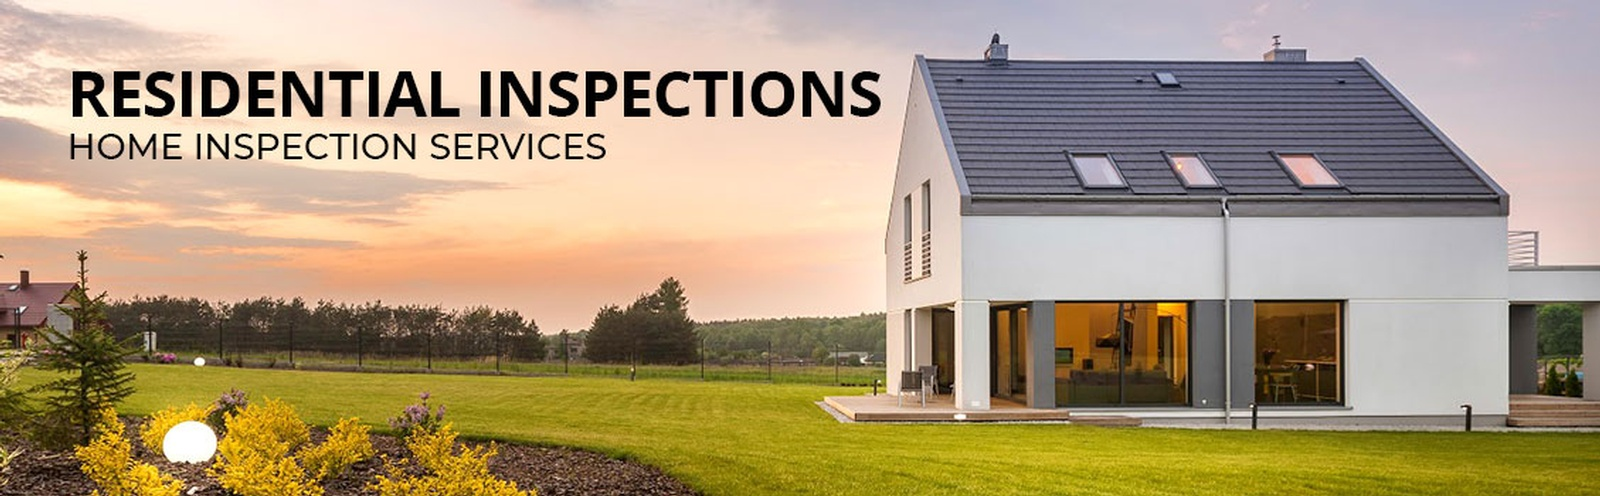 Home Inspection Services Calgary